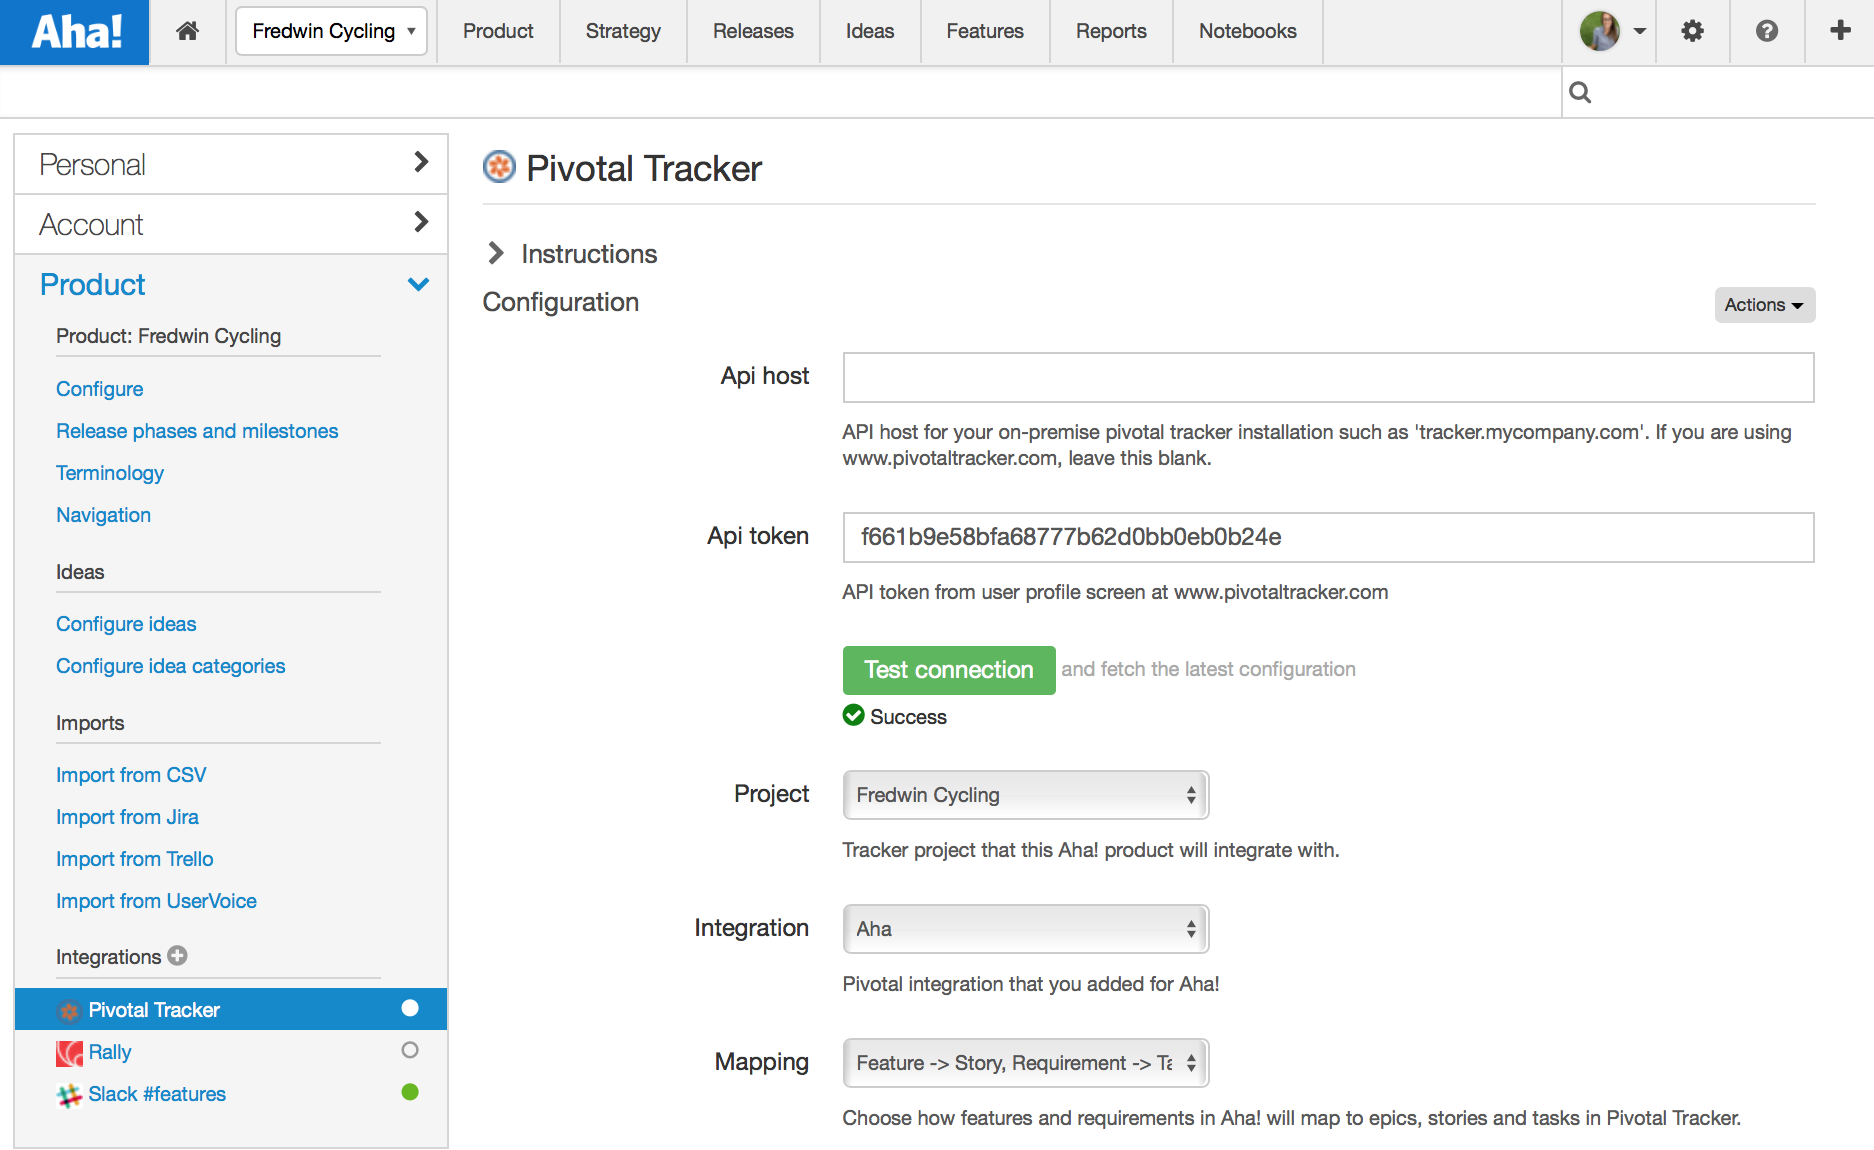 Blog - Aha! Integrated With Pivotal Tracker for Visual Product Roadmaps - inline image